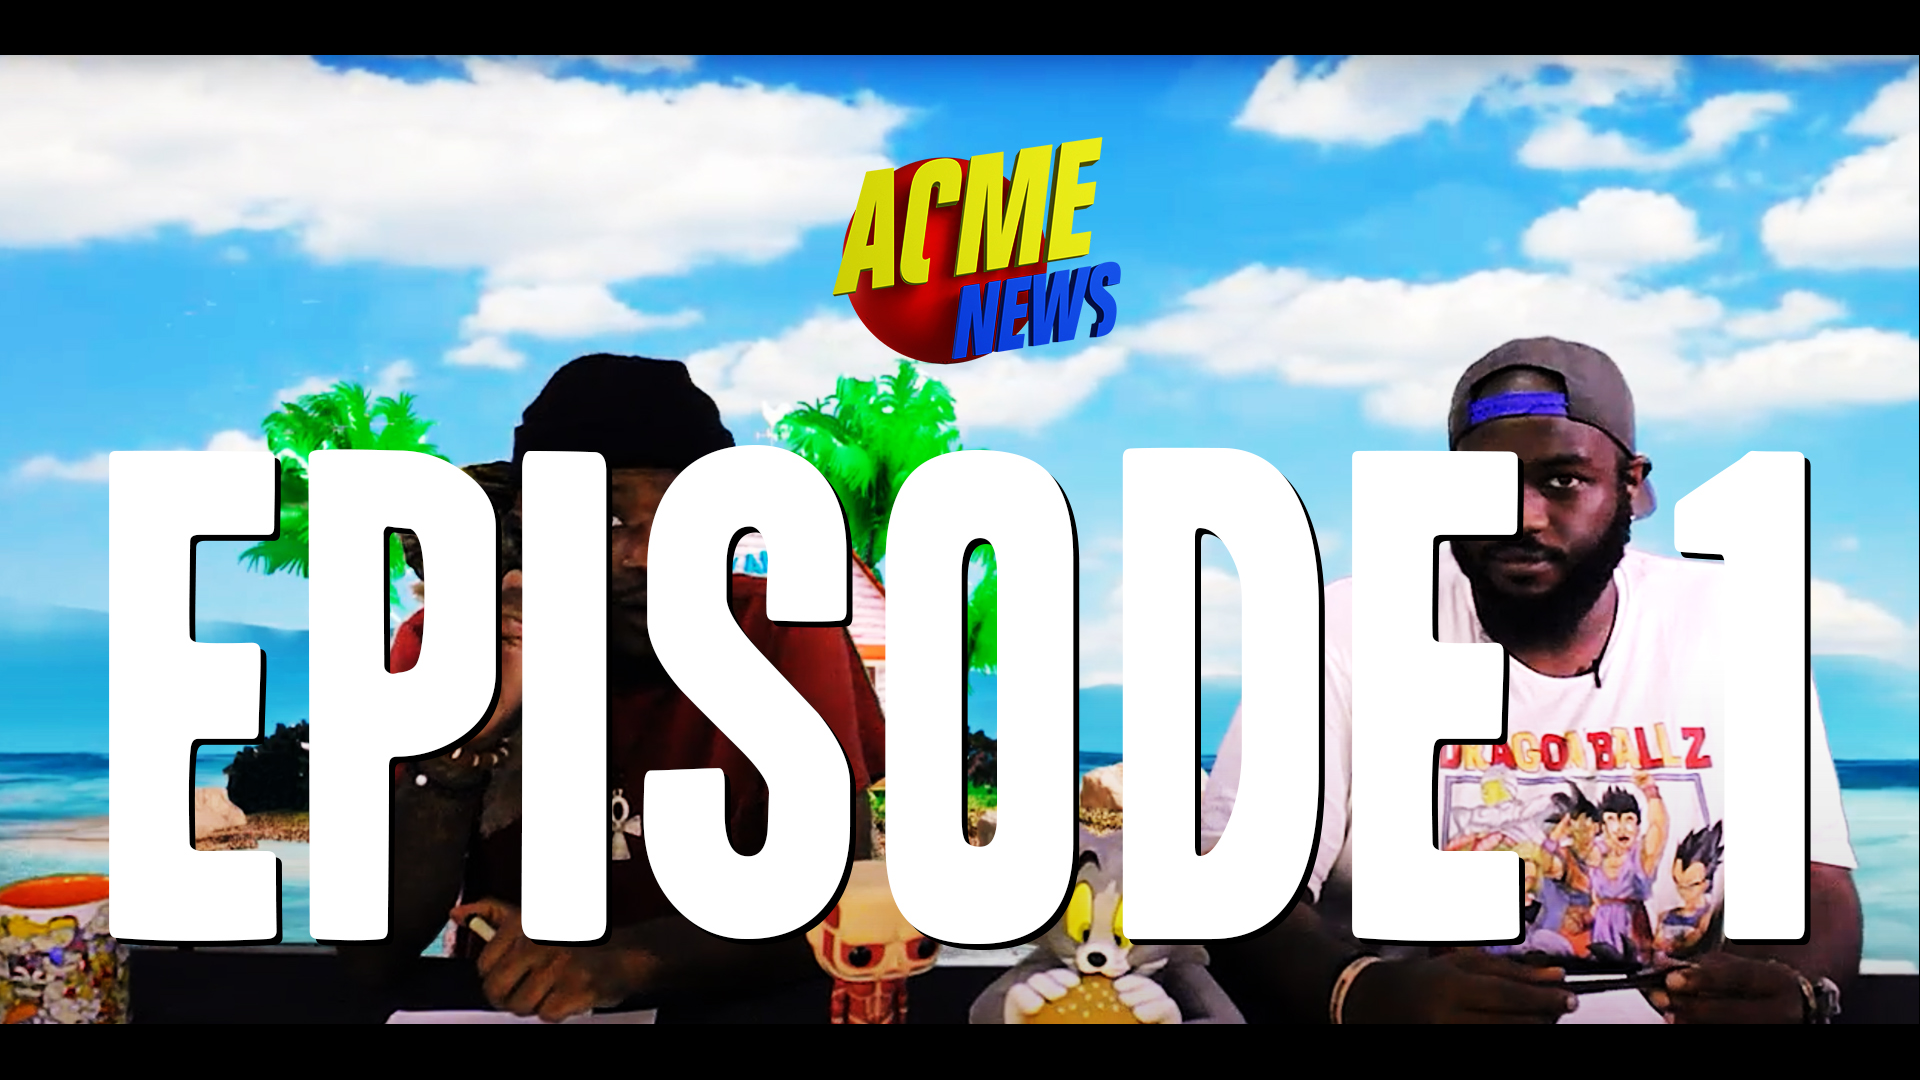 Acme News Season 1 Episode 1